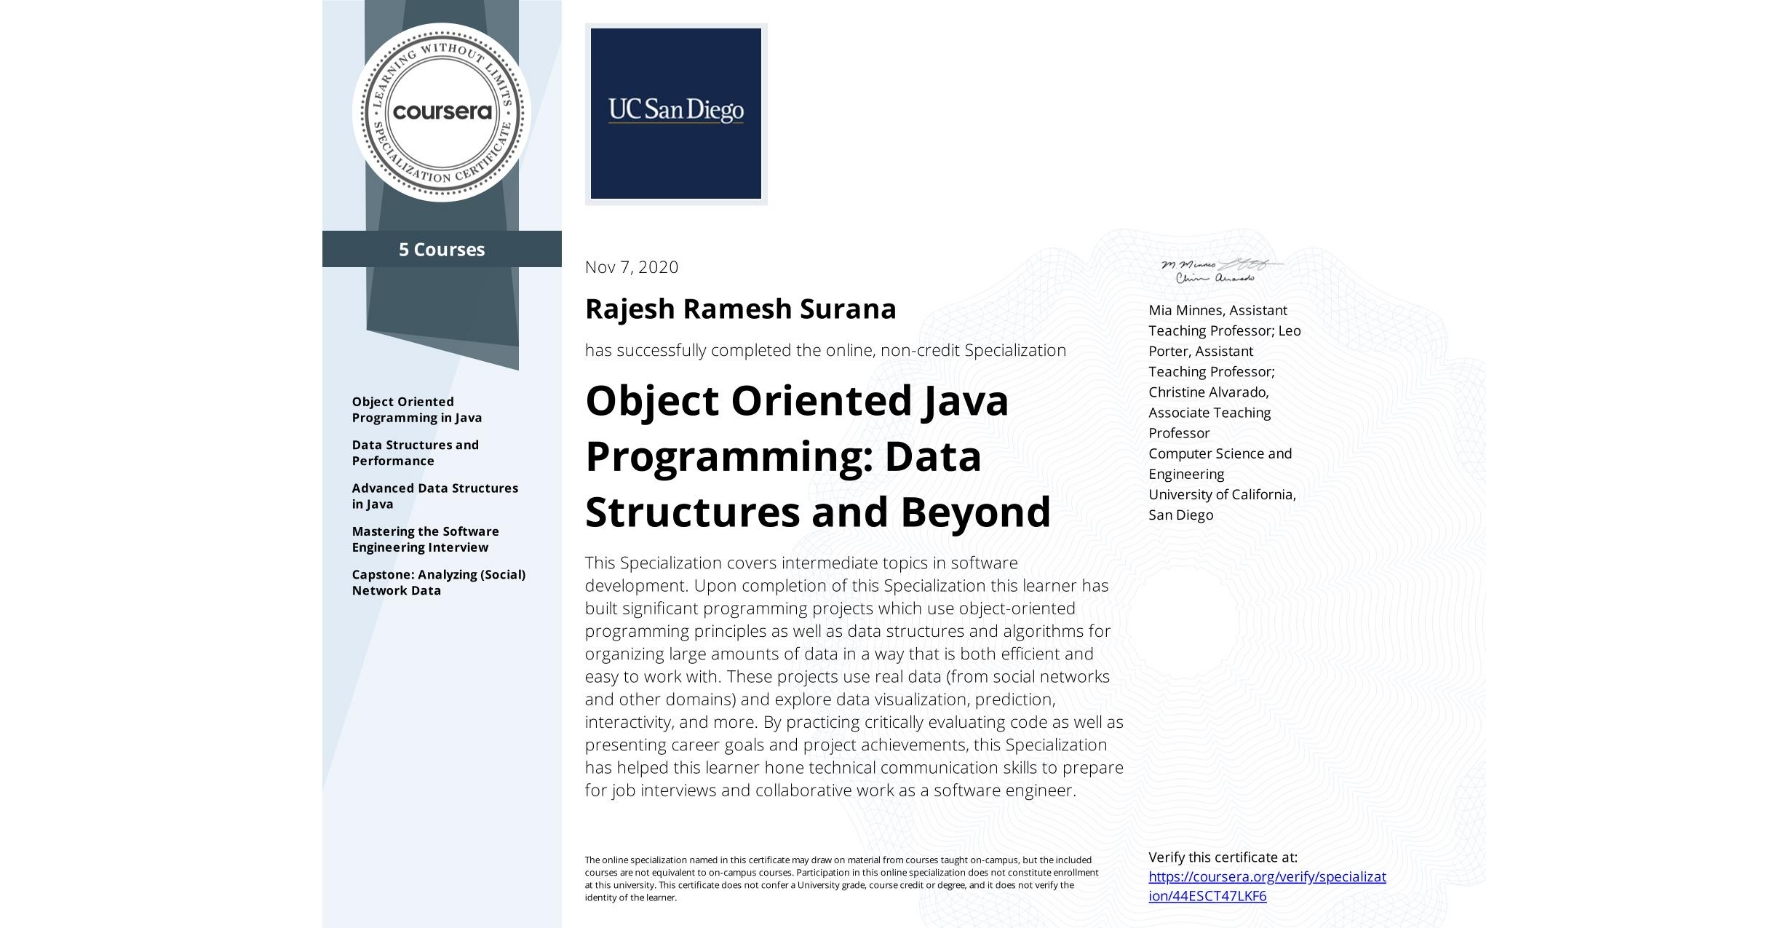 View certificate for Rajesh Ramesh Surana, Object Oriented Java Programming: Data Structures and Beyond, offered through Coursera. This Specialization covers intermediate topics in software development. Upon completion of this Specialization this learner has built significant programming projects which use object-oriented programming principles as well as data structures and algorithms for organizing large amounts of data in a way that is both efficient and easy to work with.  These projects use real data (from social networks and other domains) and explore data visualization, prediction, interactivity, and more. By practicing critically evaluating code as well as presenting career goals and project achievements, this Specialization has helped this learner hone technical communication skills to prepare for job interviews and collaborative work as a software engineer.